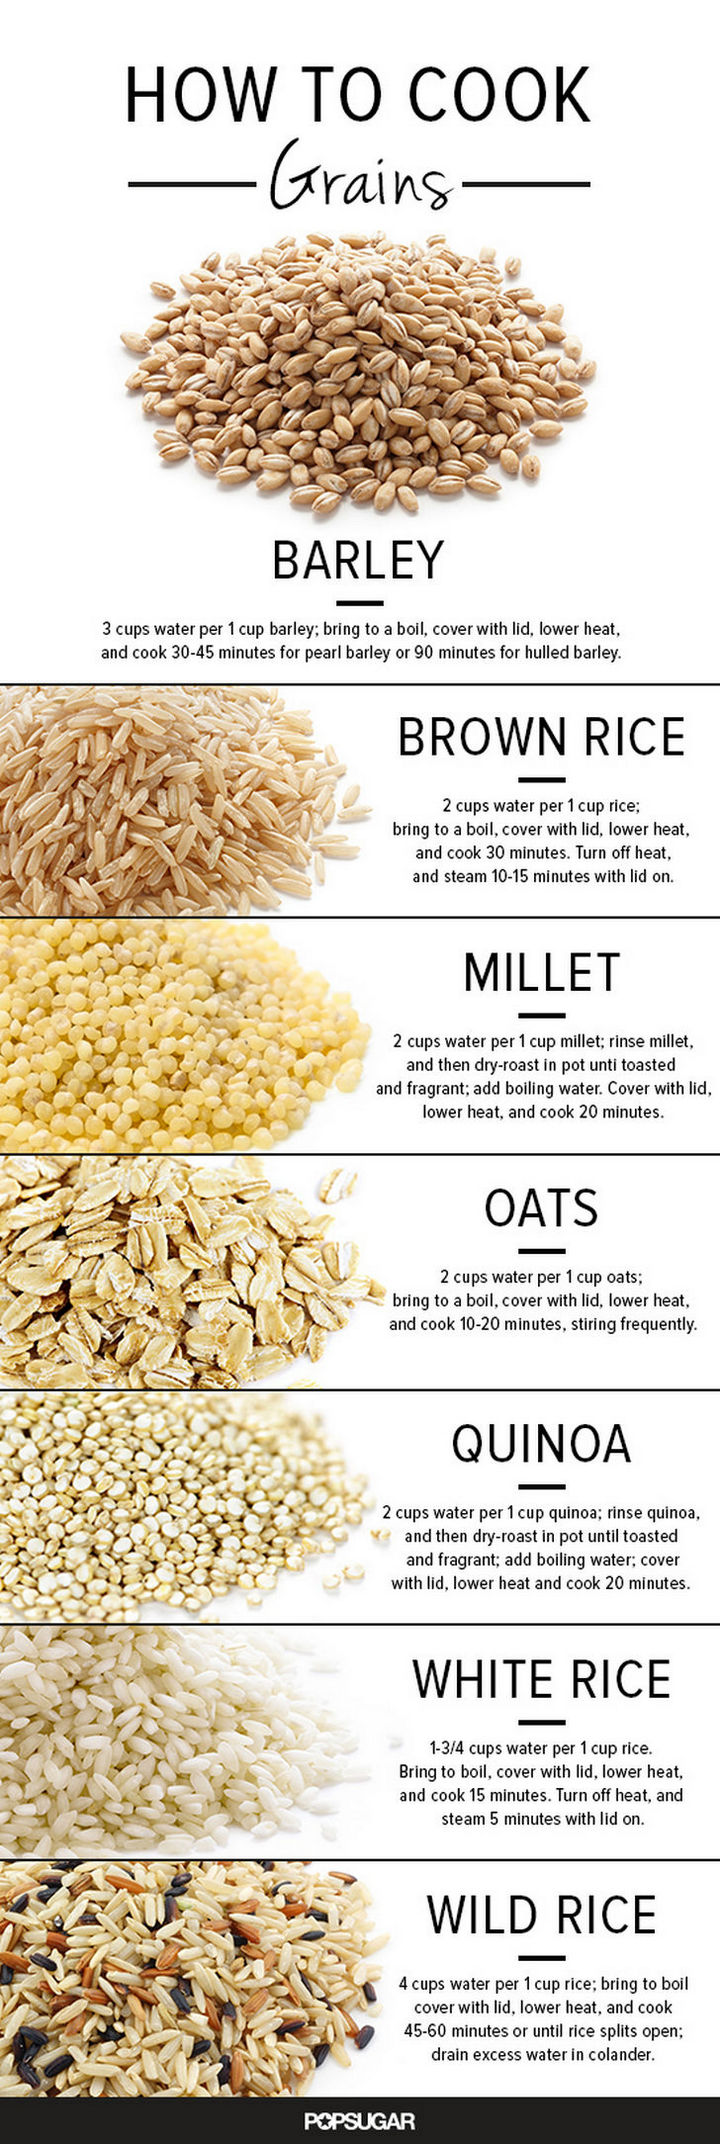 15 Kitchen Cheat Sheets - How to cook grains such as barley, brown rice, millet, oats, quinoa, white rice, and wild rice.